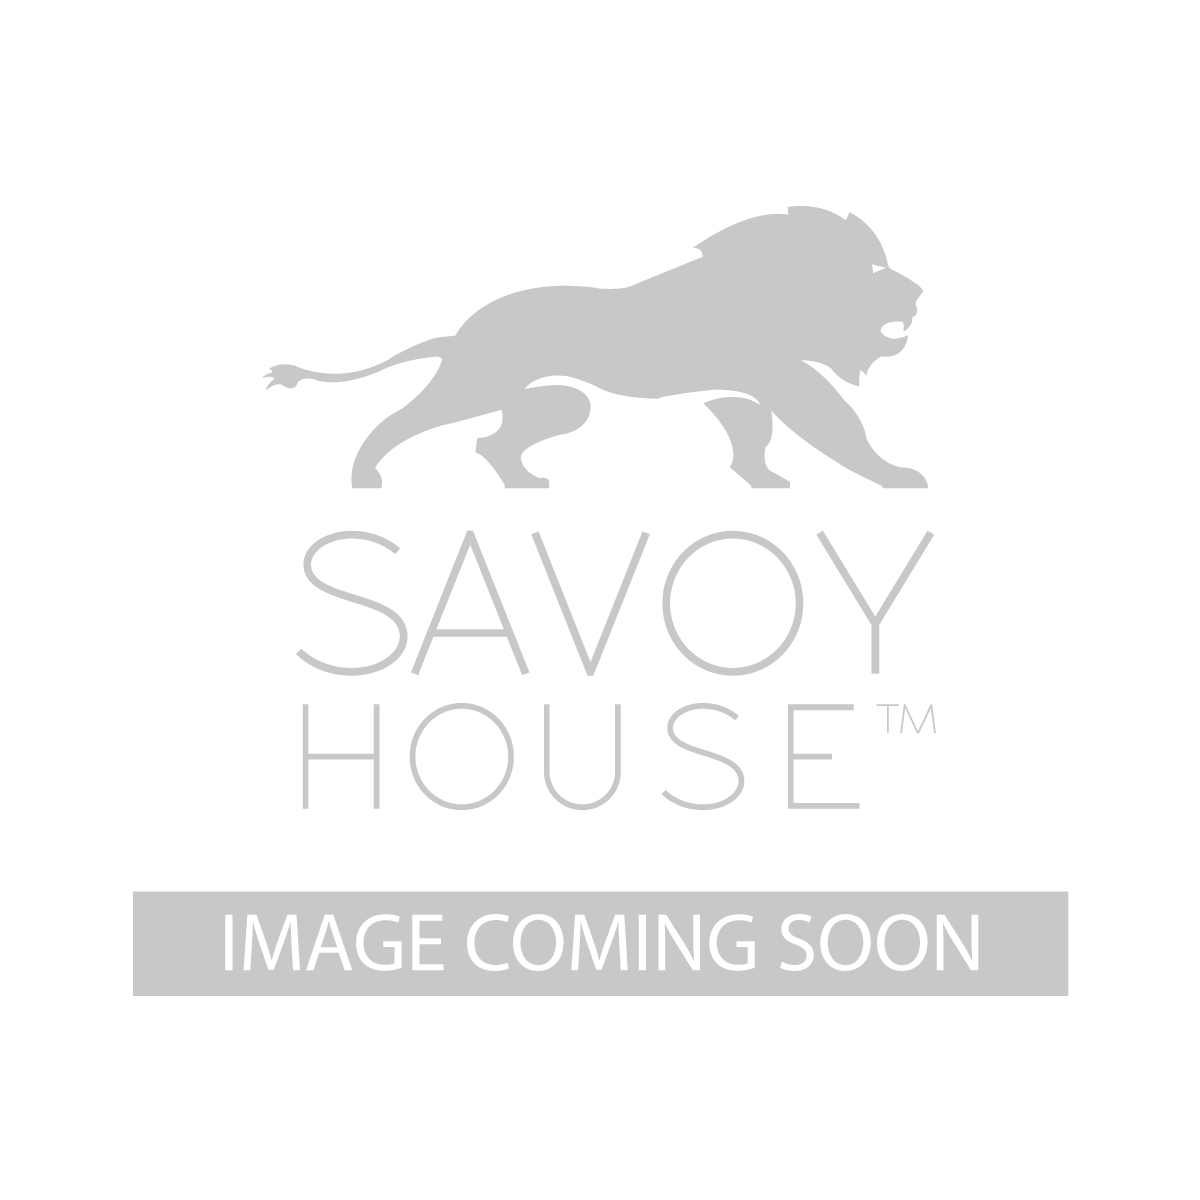 7 4702 6 11 bangle 5 light pendant by savoy house for Savoy house com